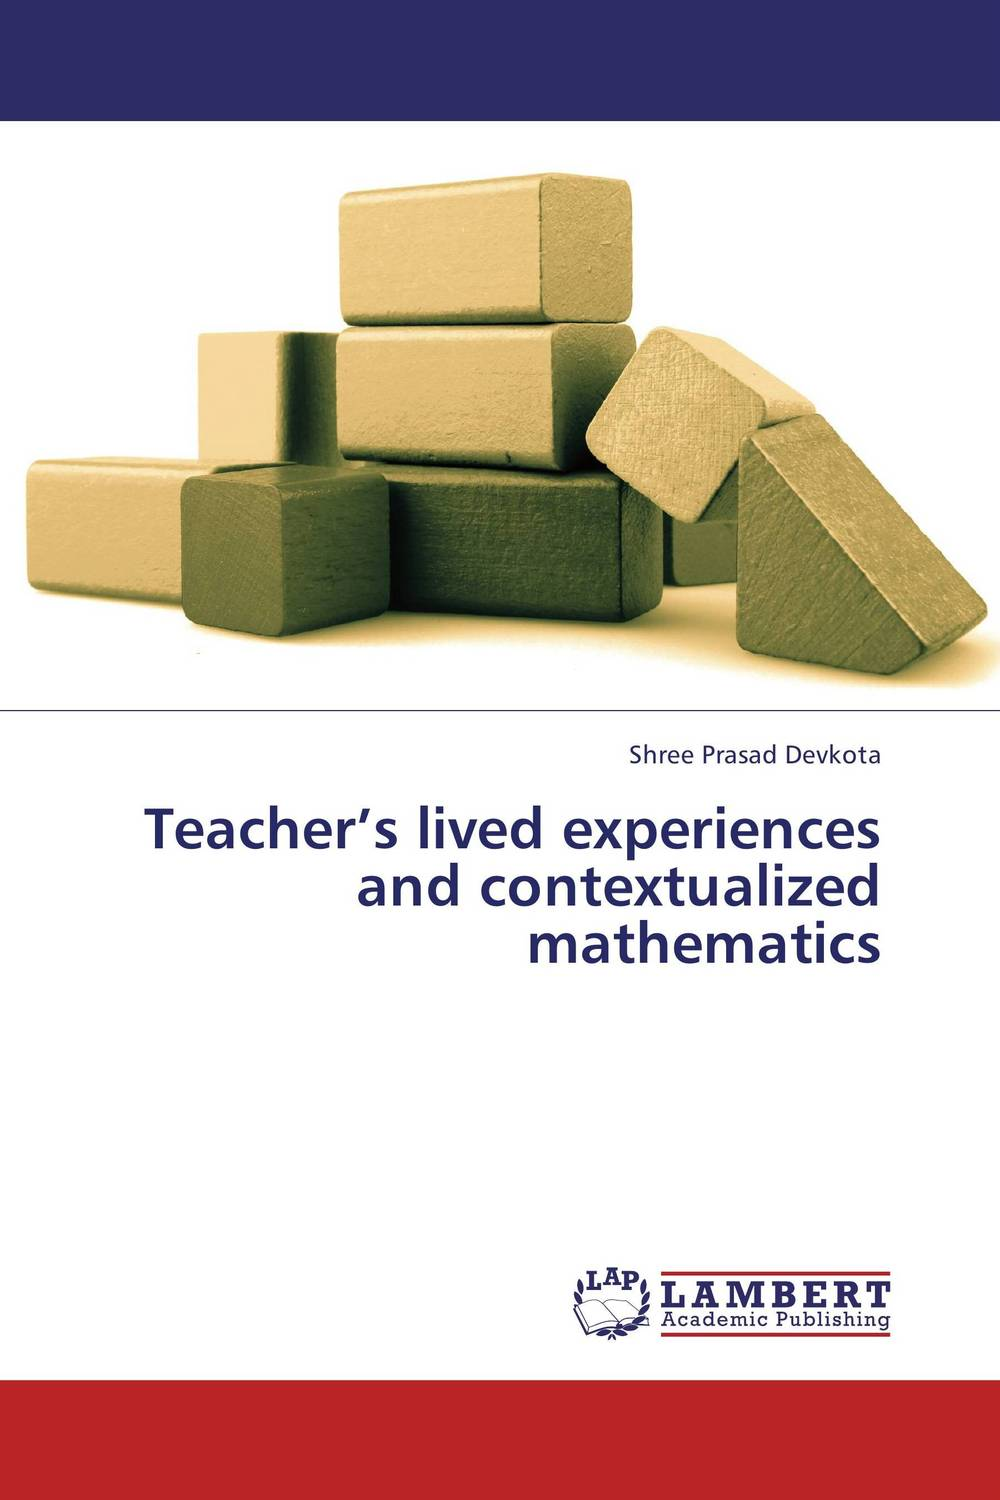 Teacher's lived experiences and contextualized mathematics